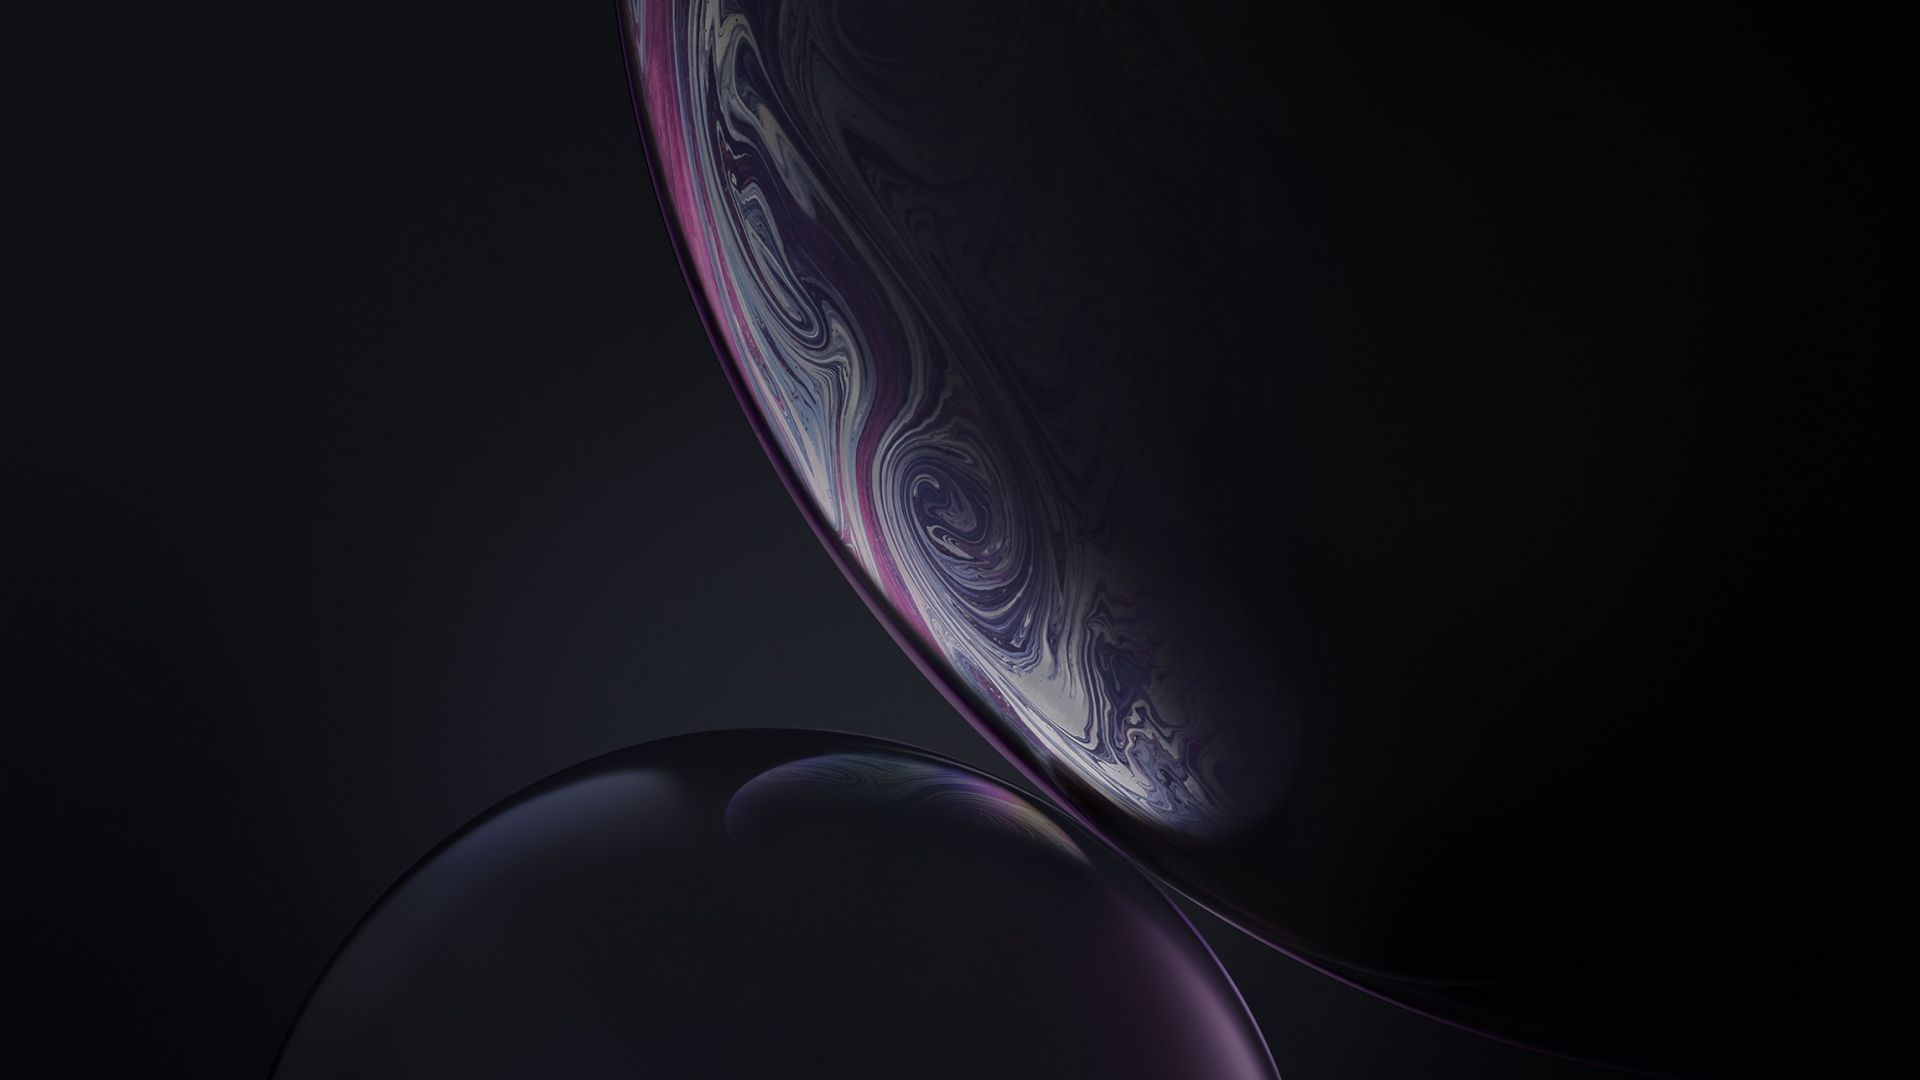 Bubbles Gray Iphone Xr Ios 12 Stock Hd Apple Logo Wallpaper Laptop Wallpaper Desktop Wallpapers Wallpaper